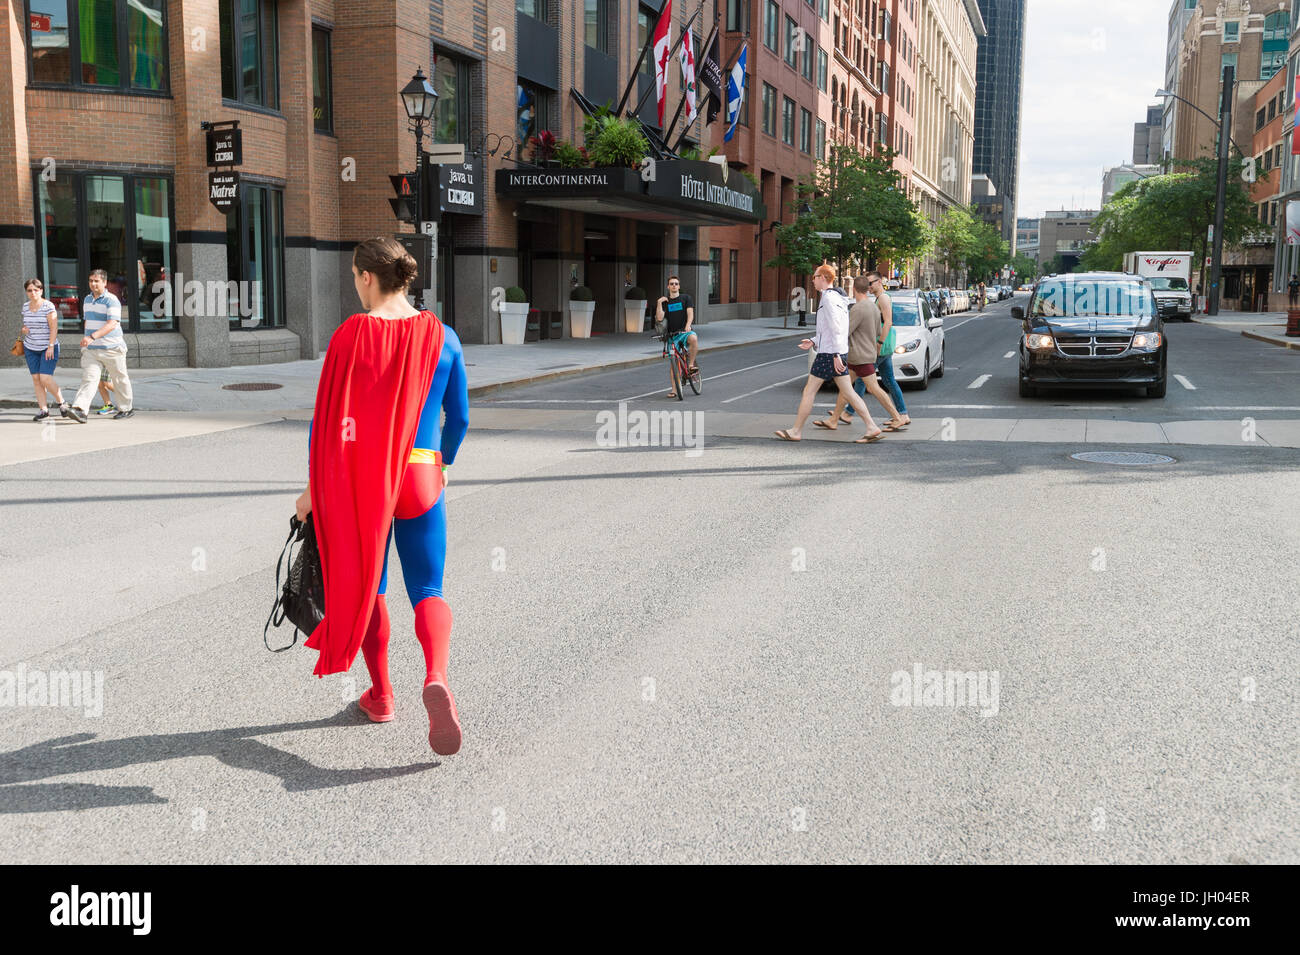 Montreal, Canada - 9 July 2017: Superman is walking the streets of Montreal after ComicCon convention. - Stock Image